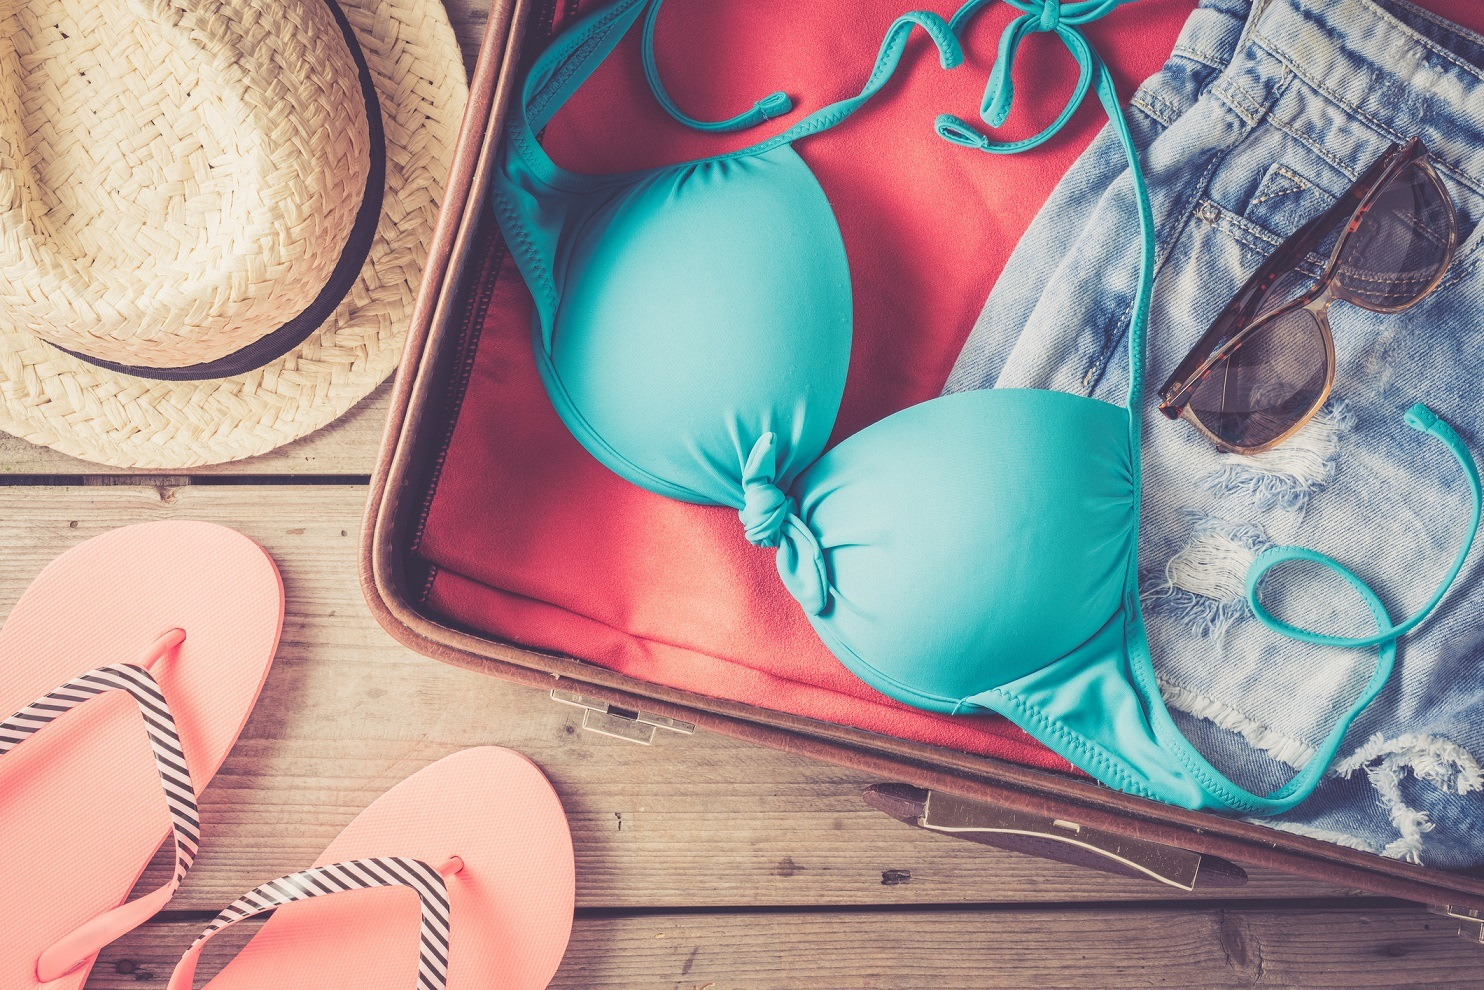 Packing suitcase with swimsuit